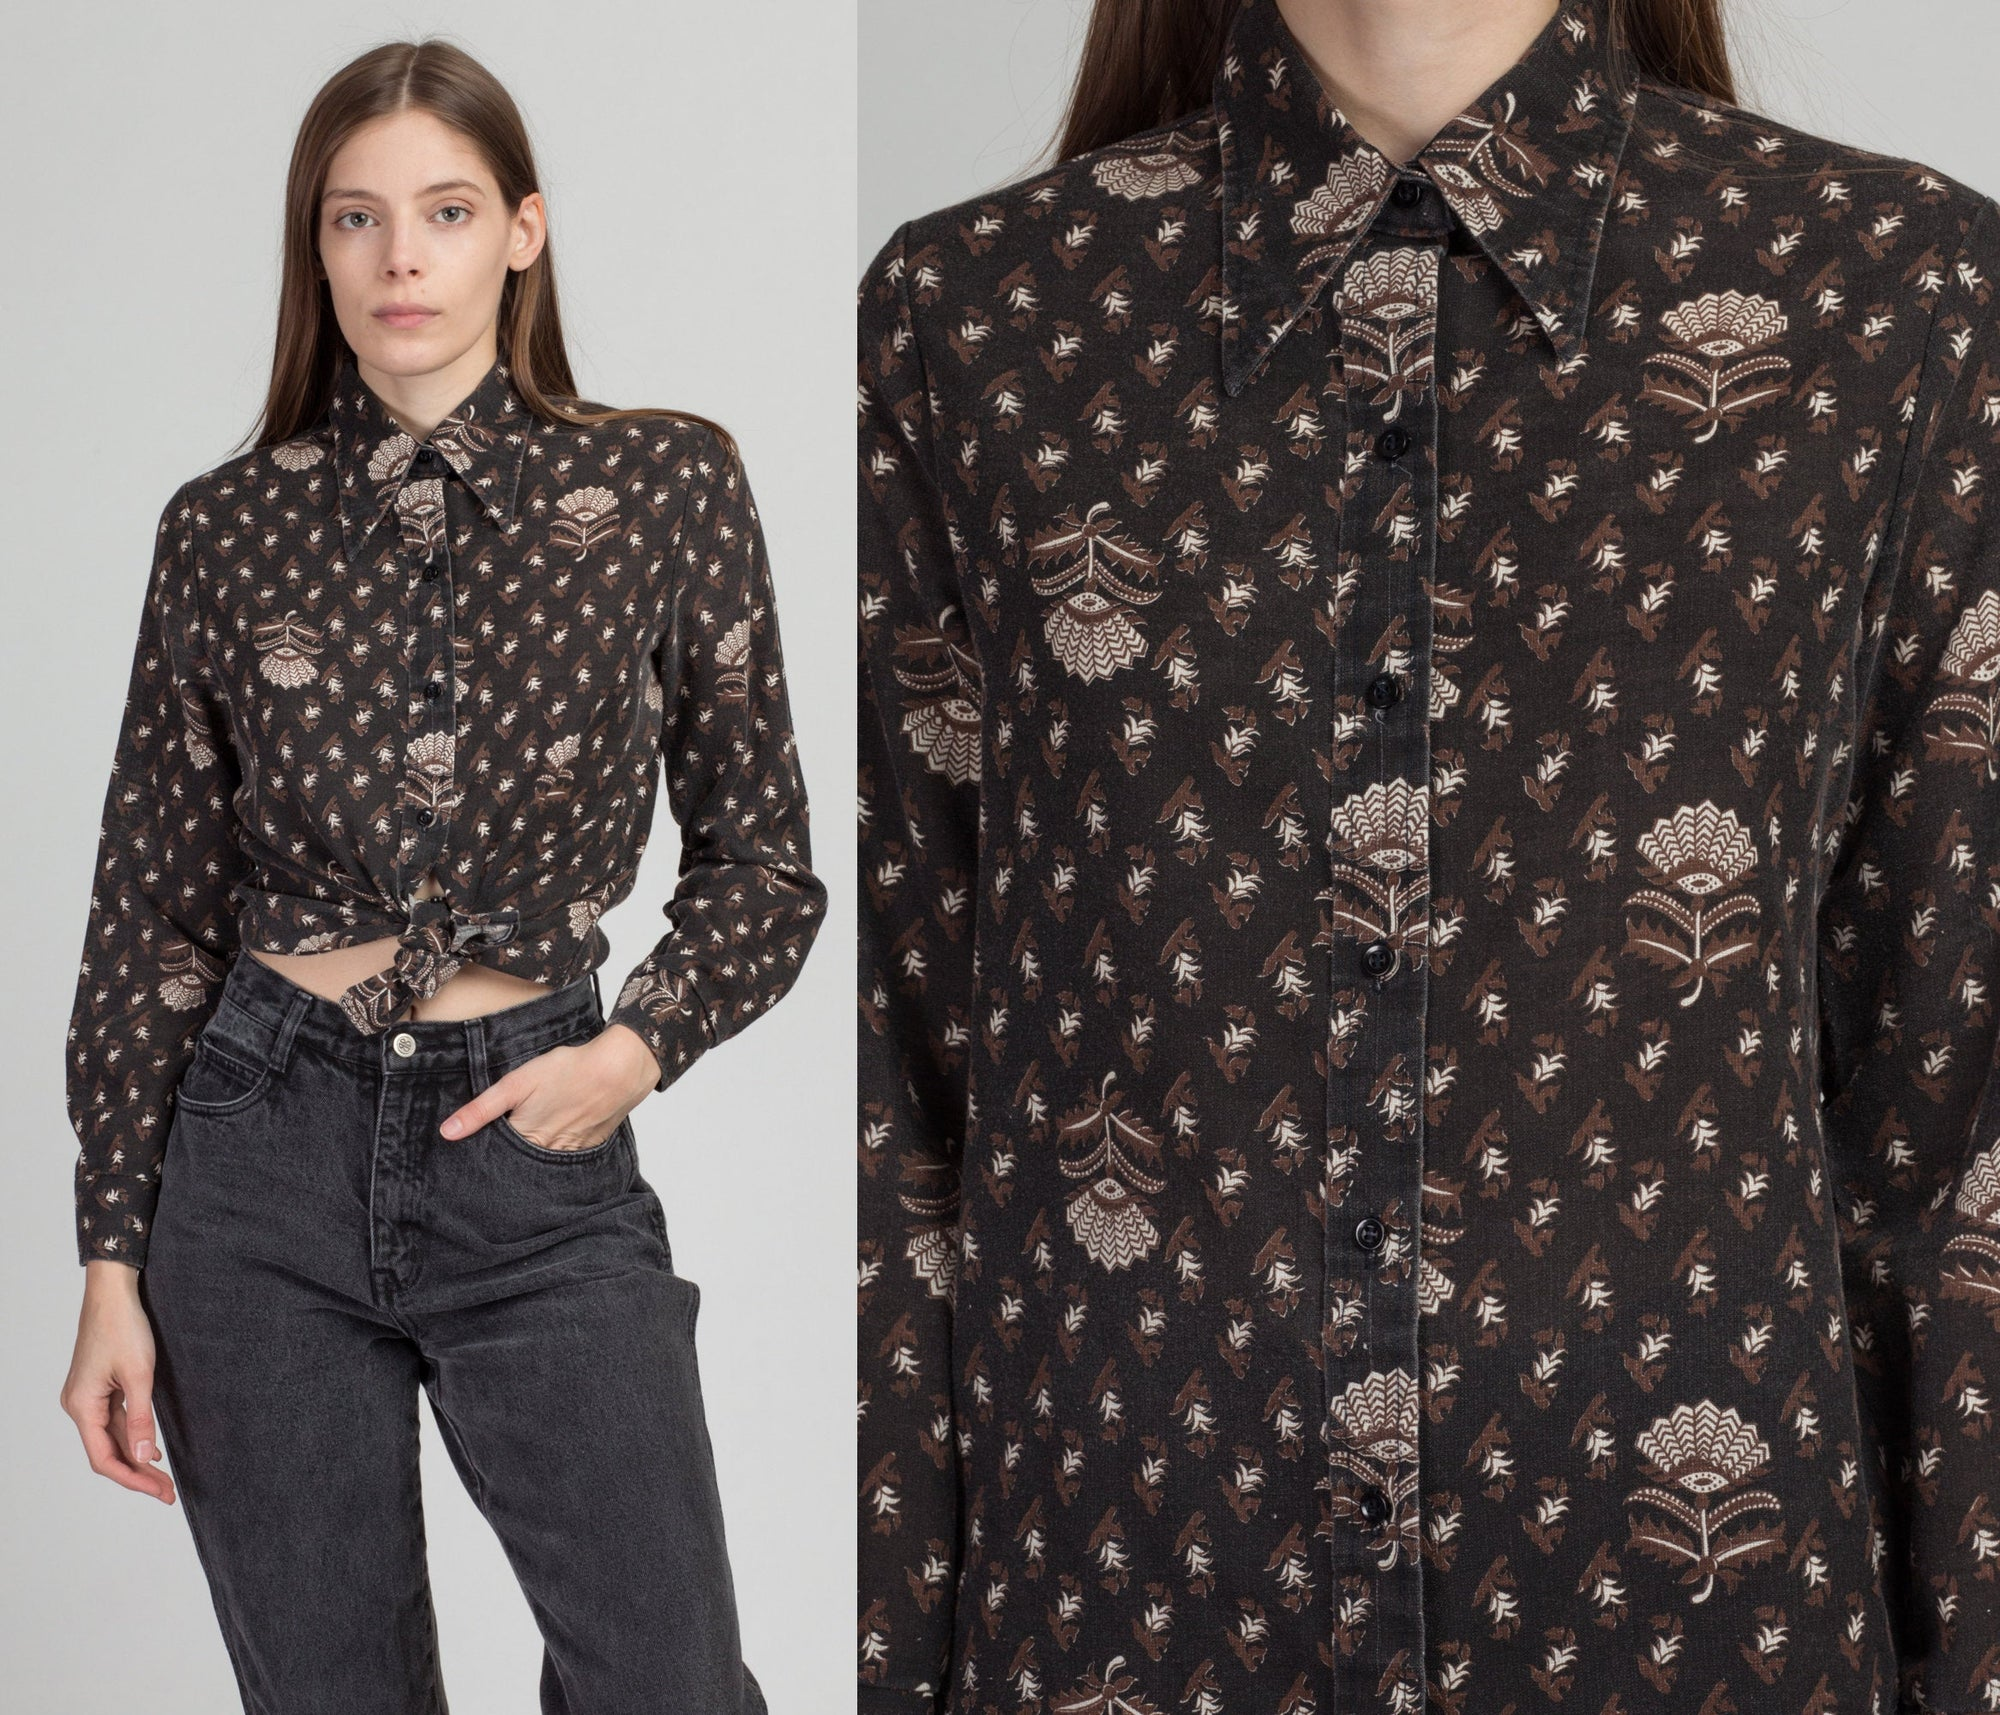 70s Bobbie Brooks Black Floral Shirt - Medium | Vintage Pointed Collar Button Up Long Sleeve Top